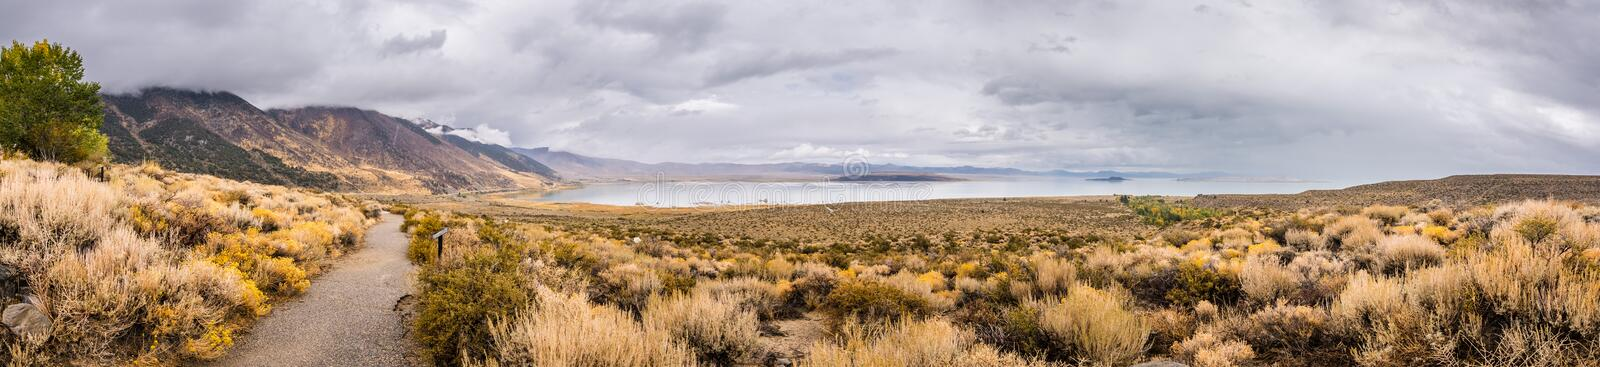 Panoramic view of the Mono Lake area royalty free stock image